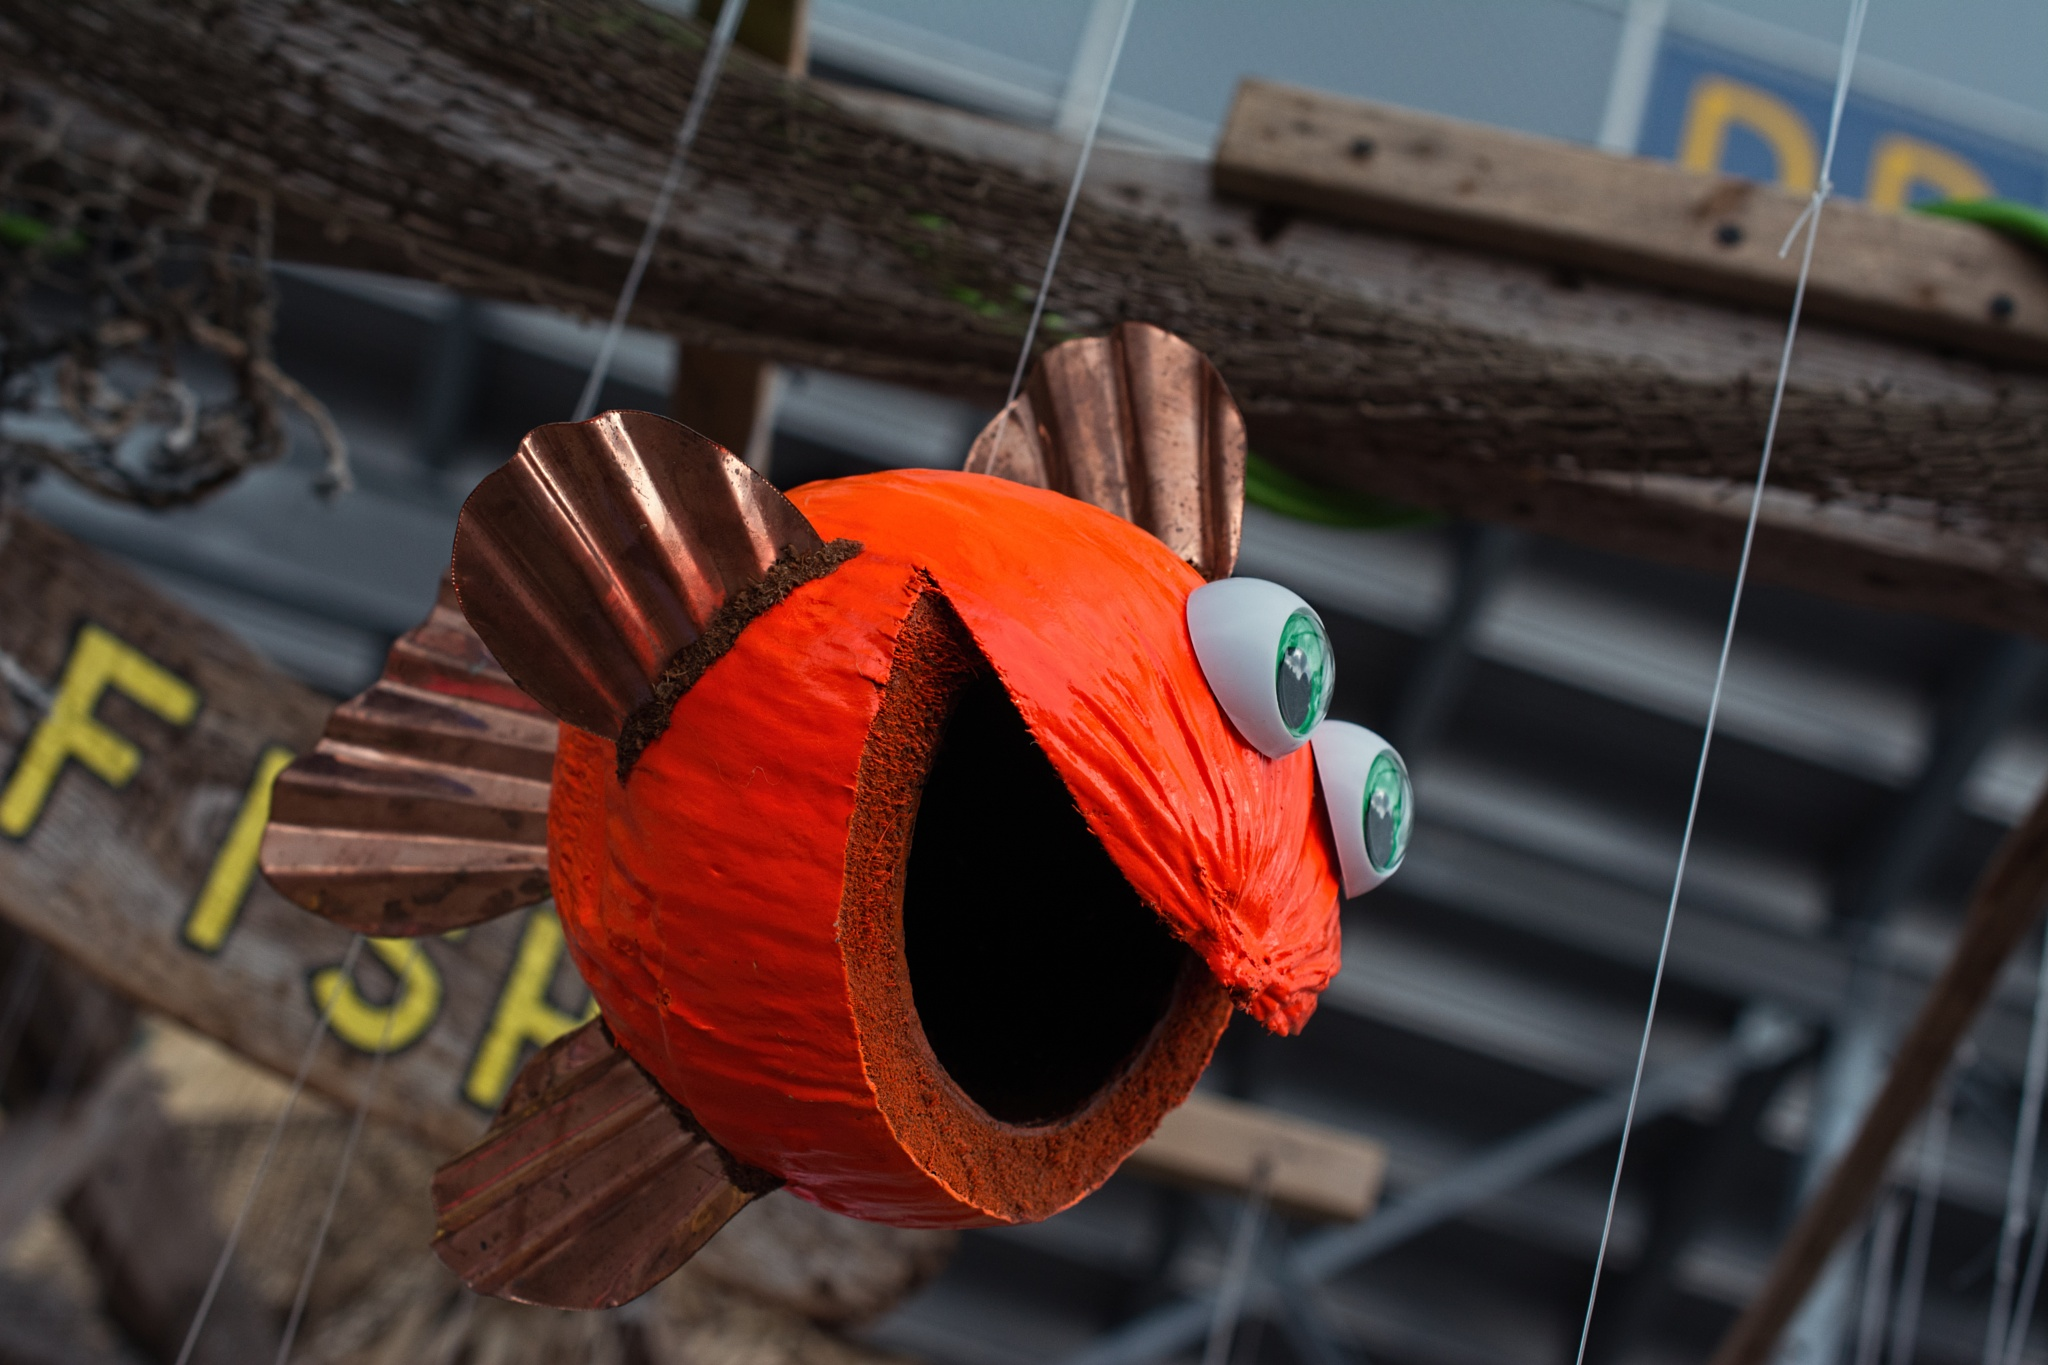 The Amazing Flying Coconut Fish by ThomasJerger